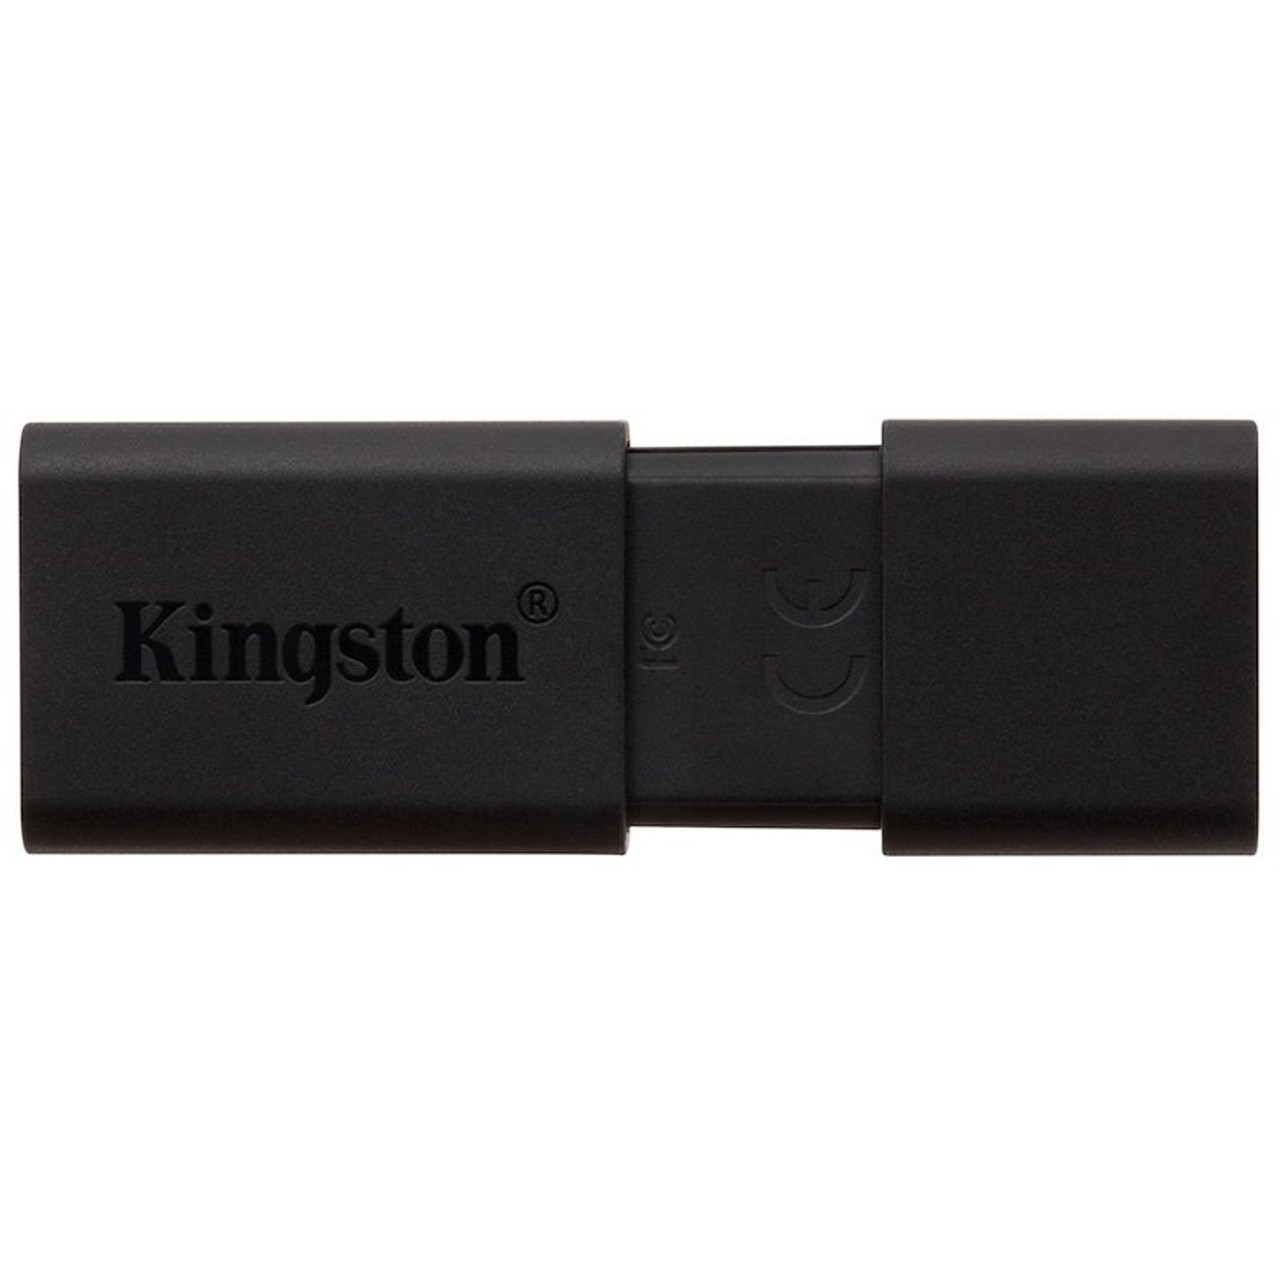 Kingston USB 32GB USB 3.0 DataTraveler (DT100G3/32GB)